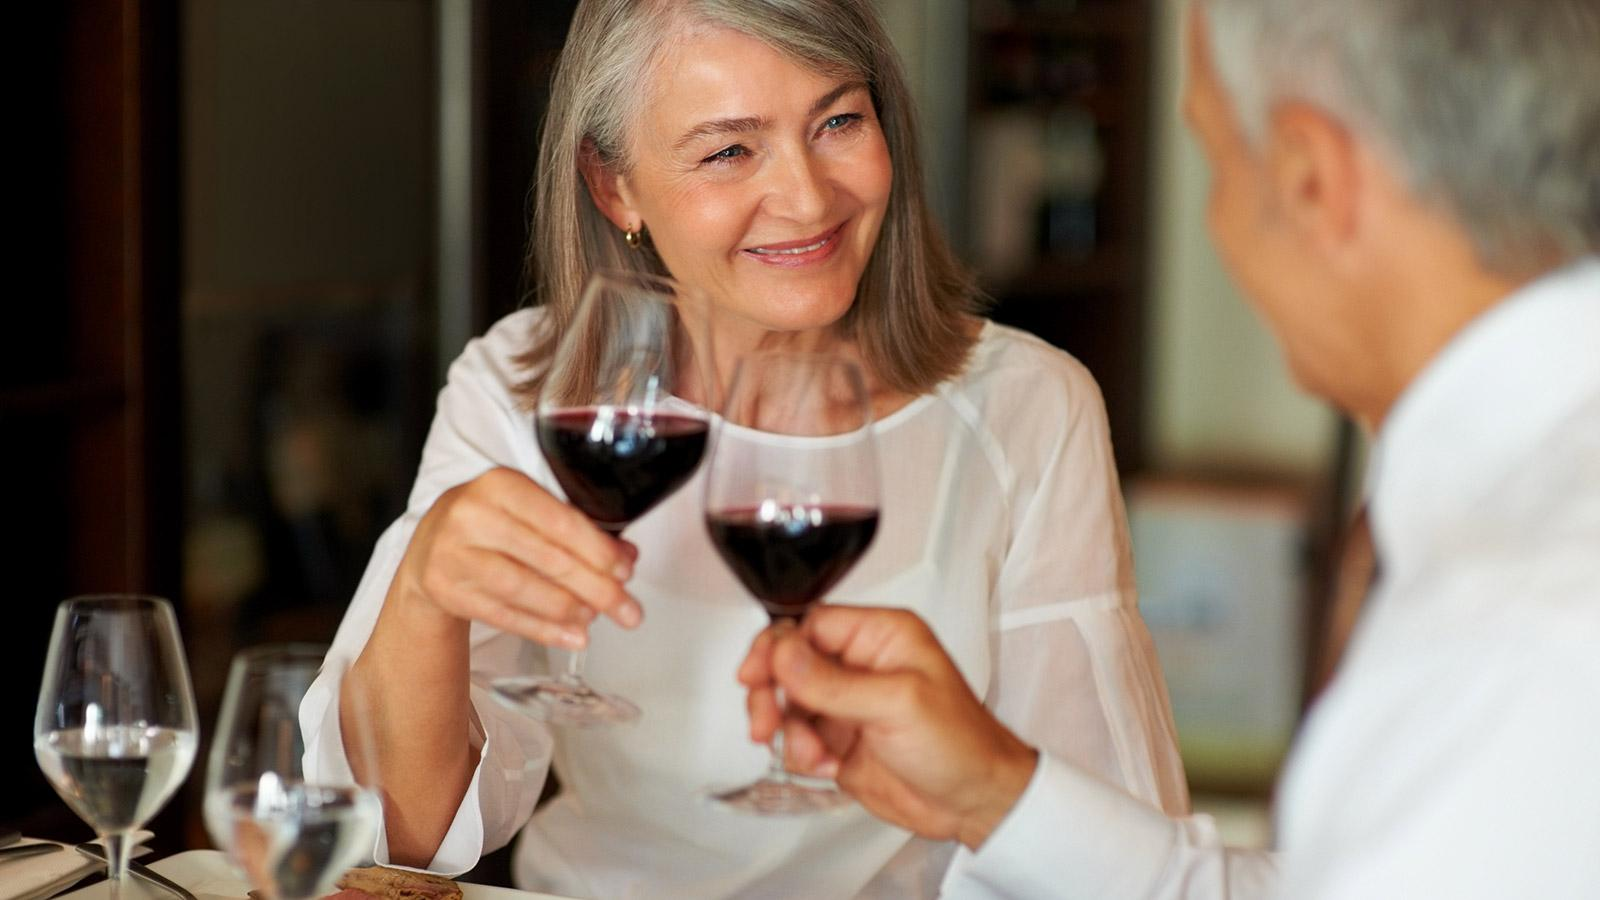 Health Watch: Moderate Wine Consumption May Help Alzheimer's Disease Patients